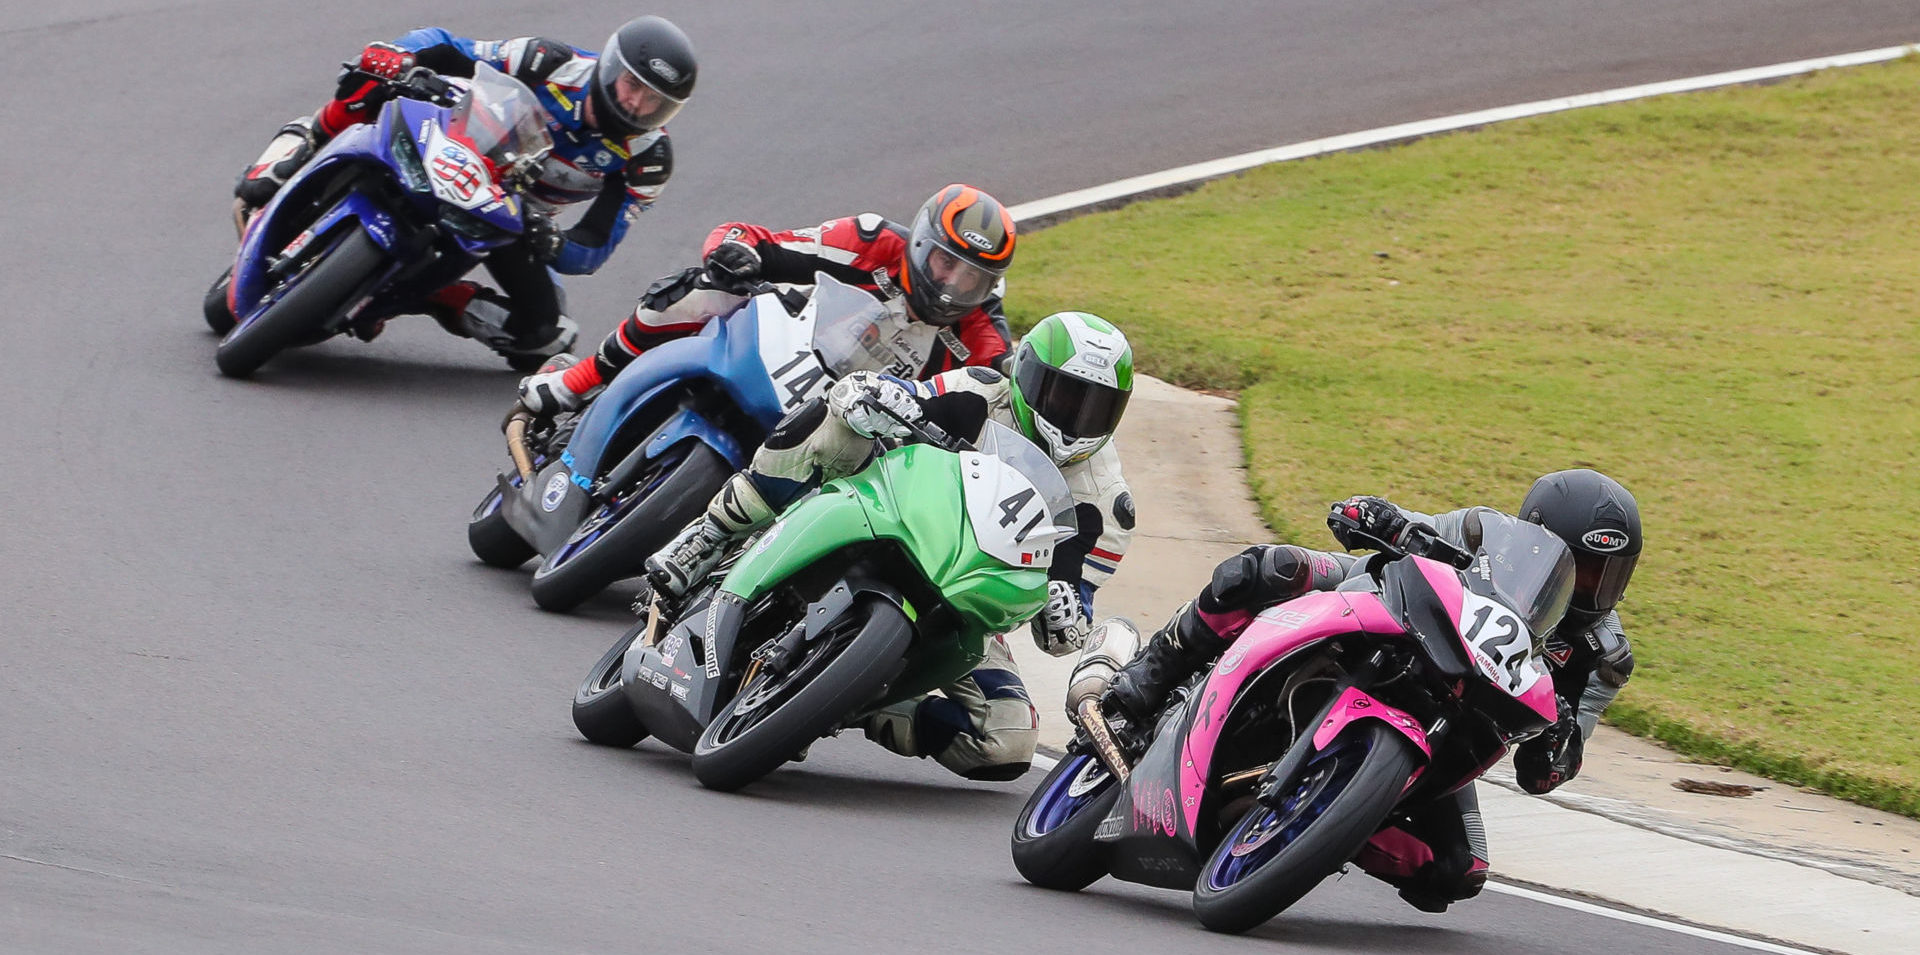 Racers in action at the 2019 AMA Road Race Grand Championship at Barber Motorsports Park. Photo by Brian J. Nelson, courtesy AMA.